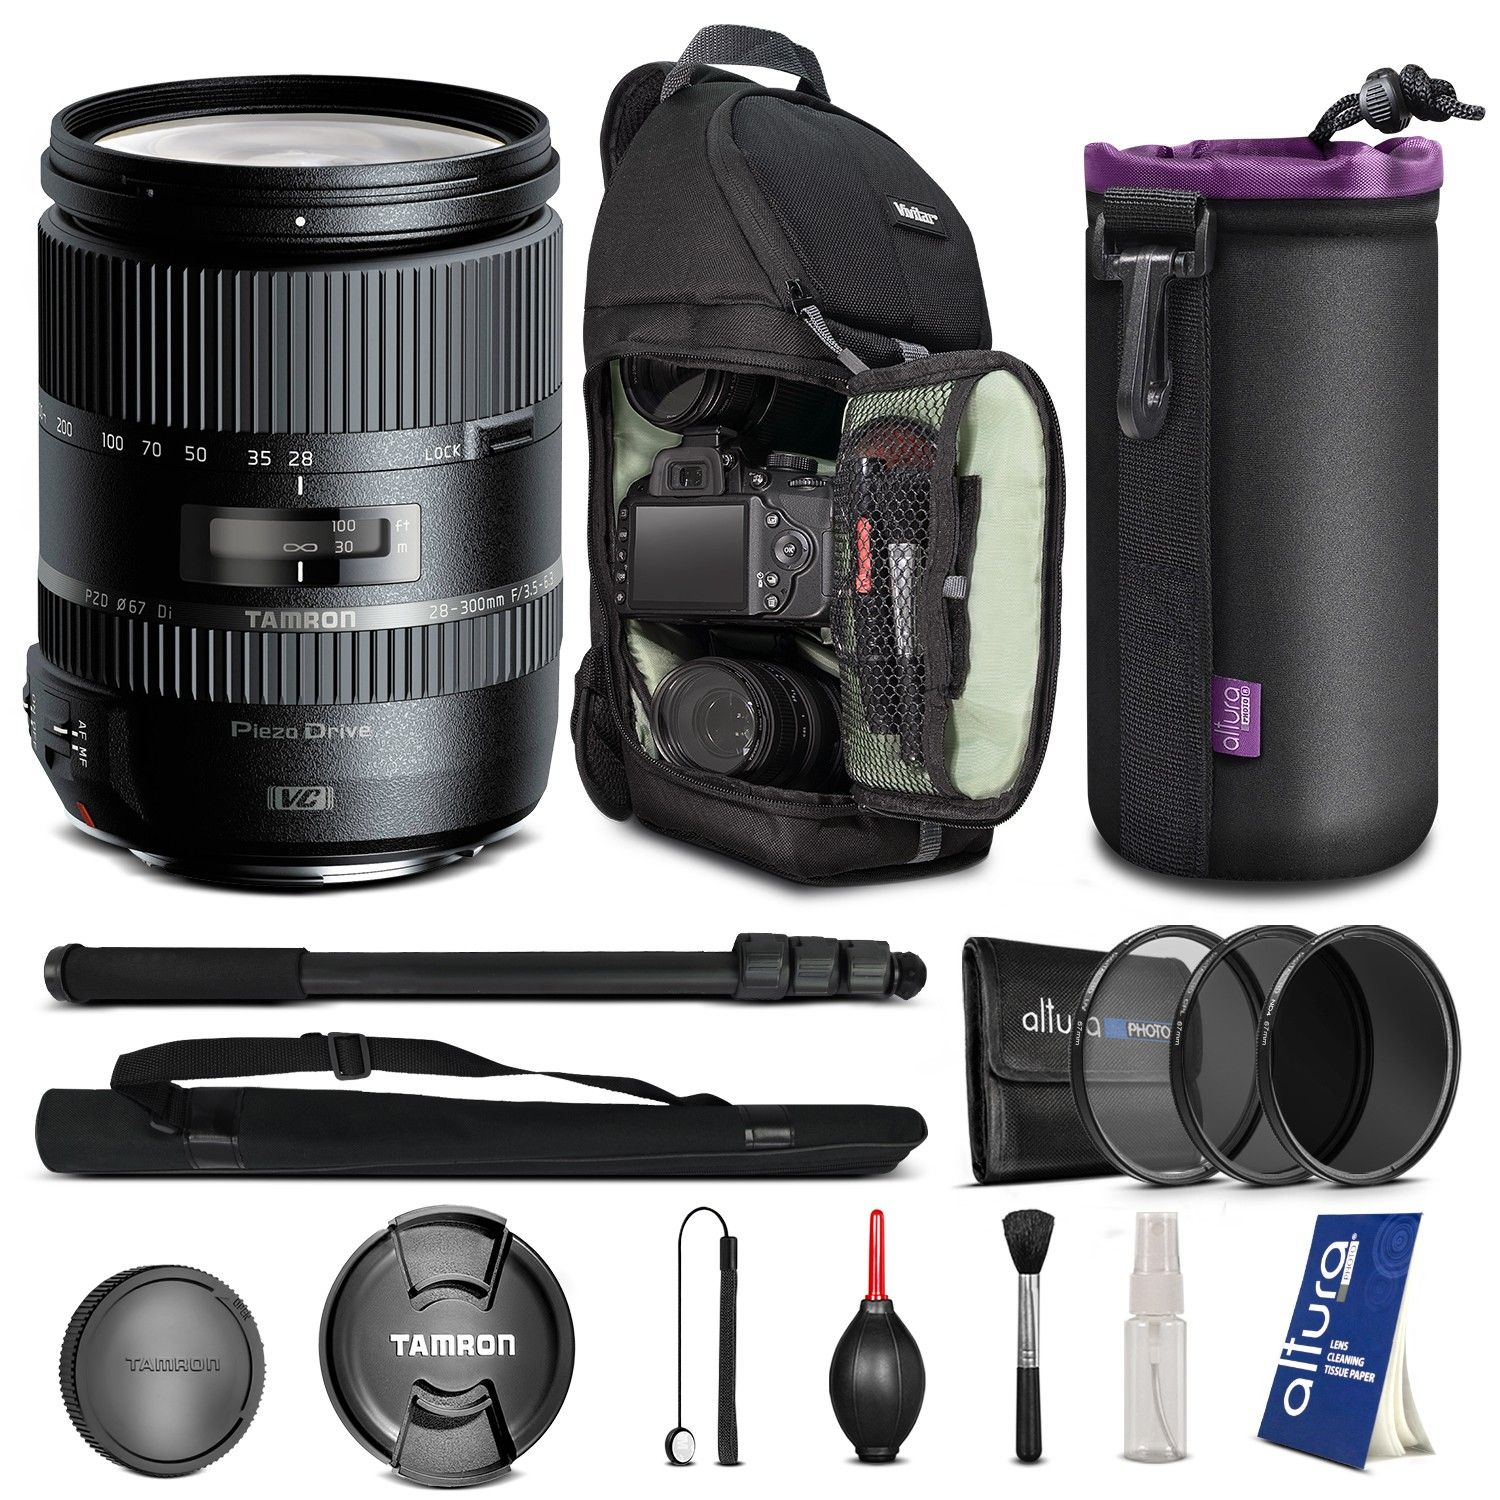 Tamron AFA010C700 28-300mm f/3.5-6.3 Di VC PZD Zoom Lens for CANON EF Digital SLR Cameras + BACKPACK & FREE ACCESSORIES